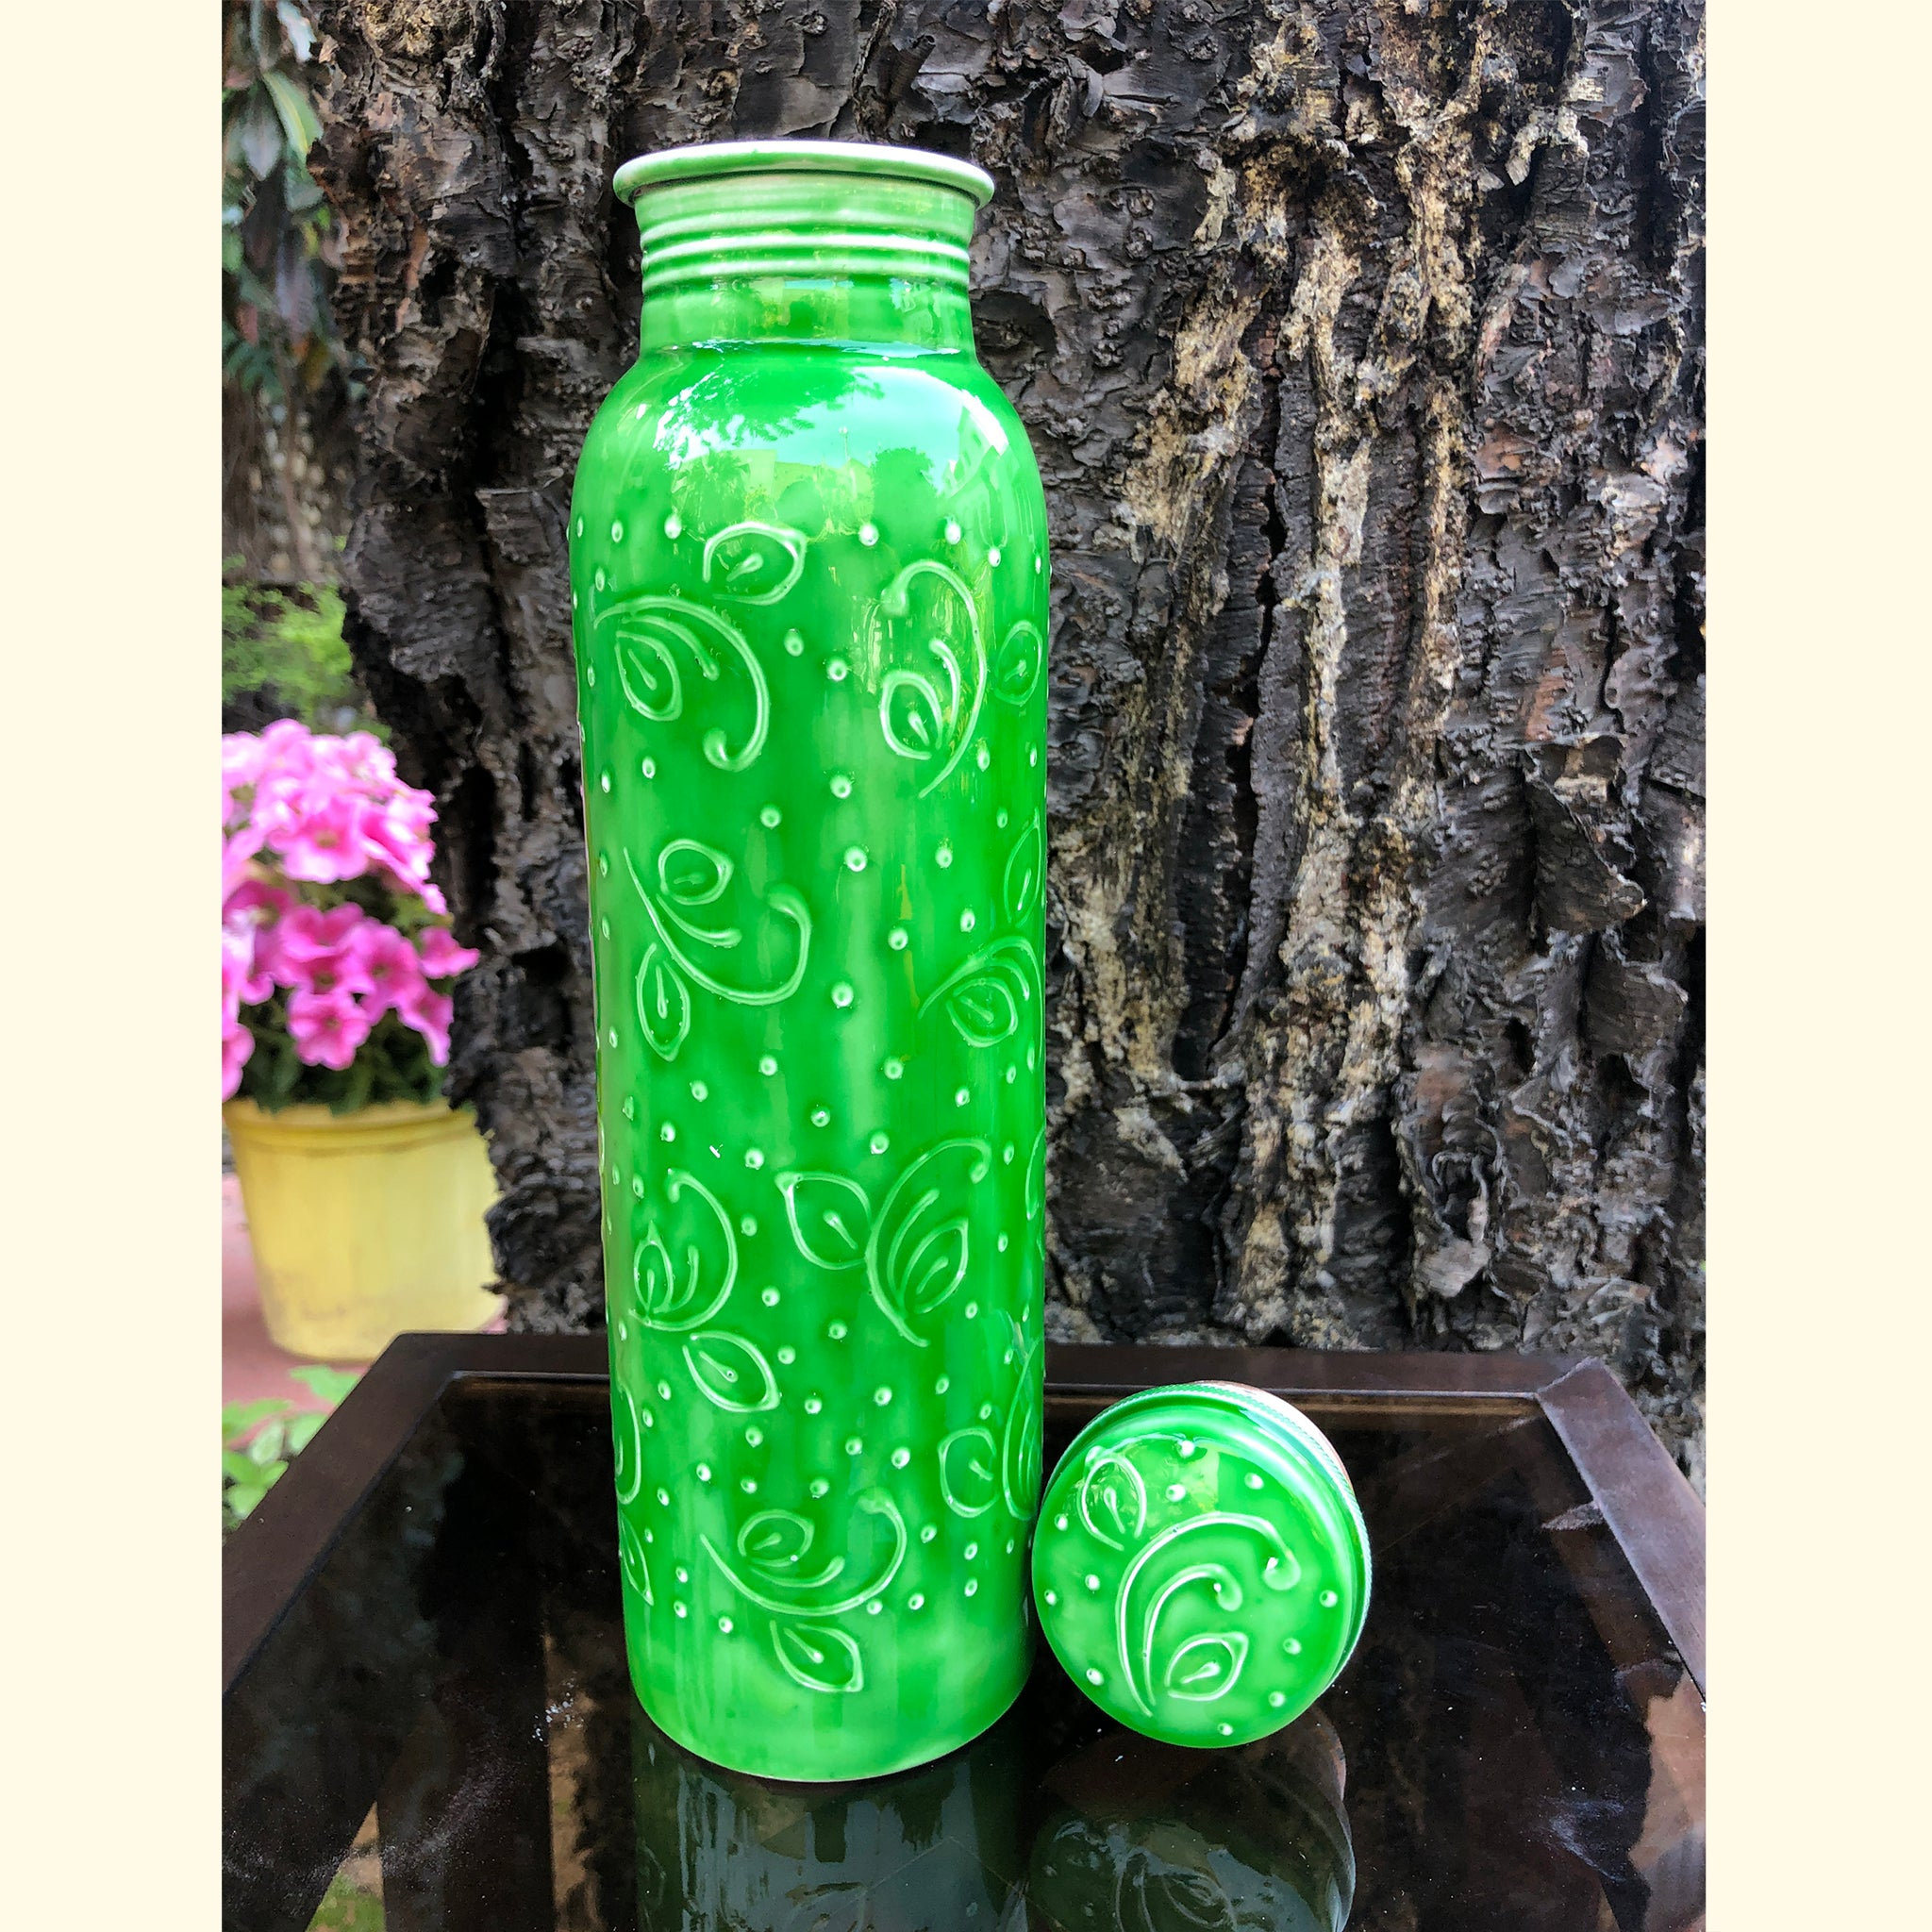 green coloured copper bottles online in unique designs